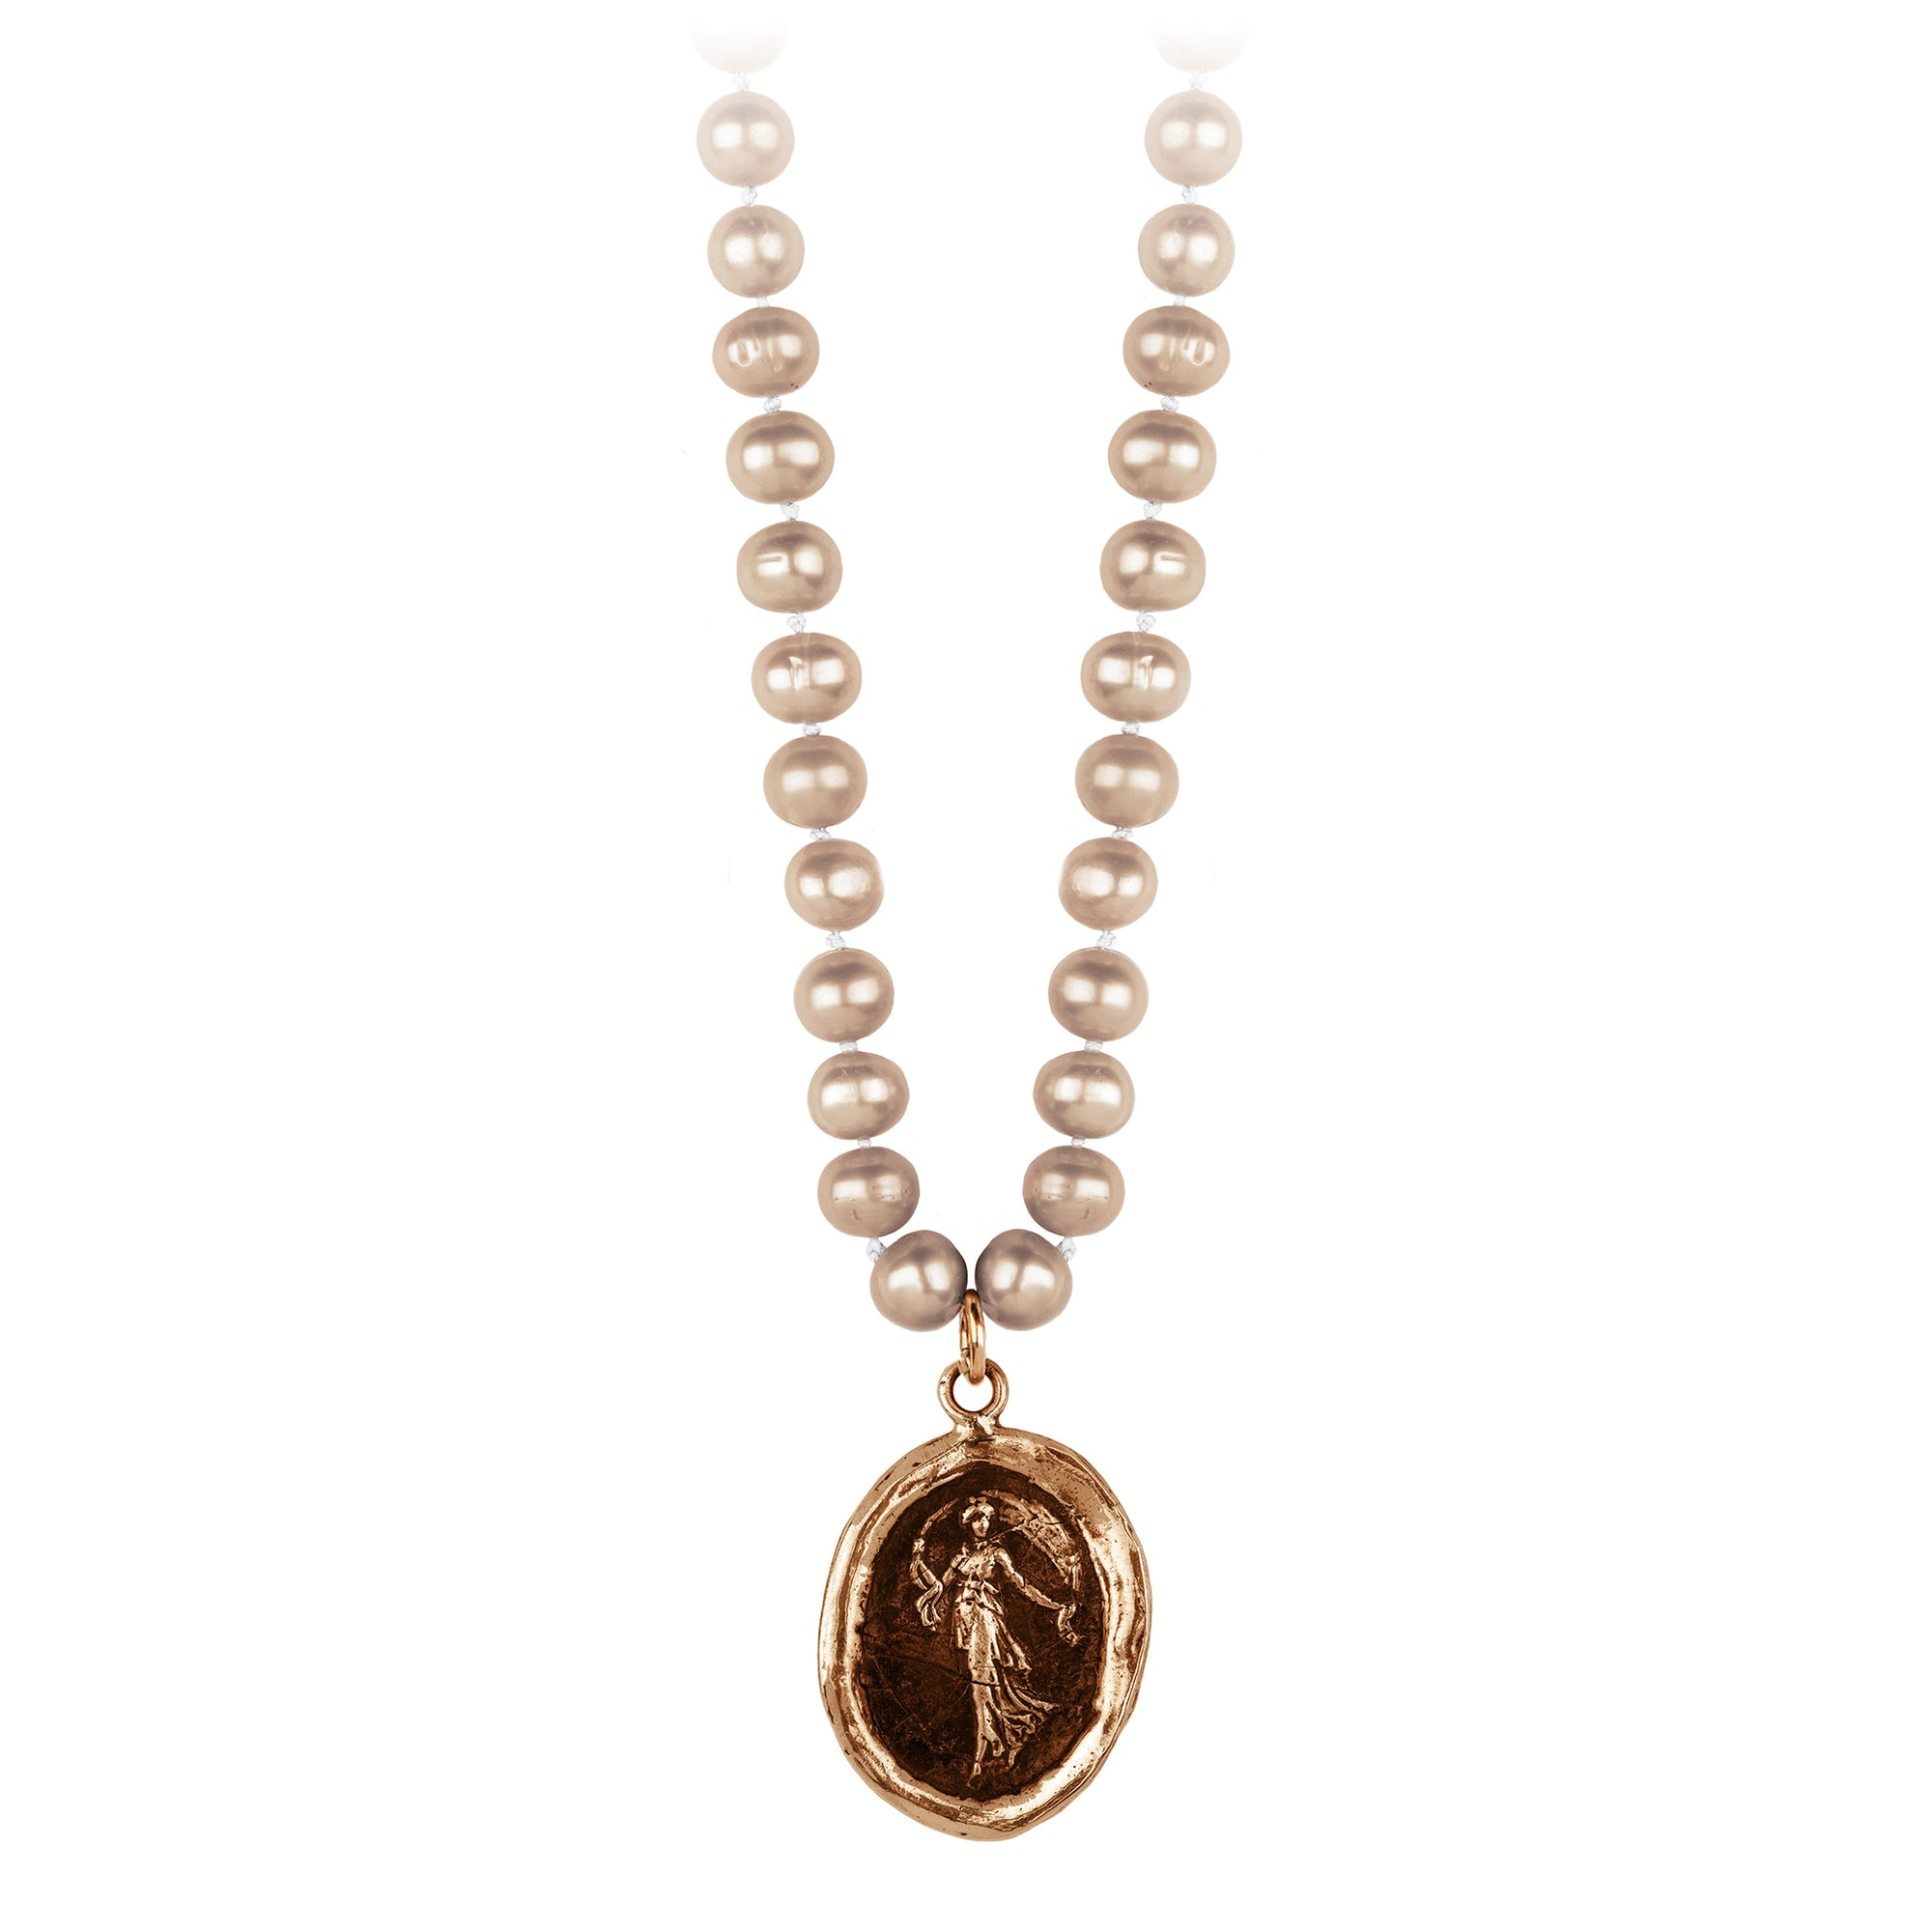 Pyrrha Festive Spirit Champagne Knotted Freshwater Pearl Necklace